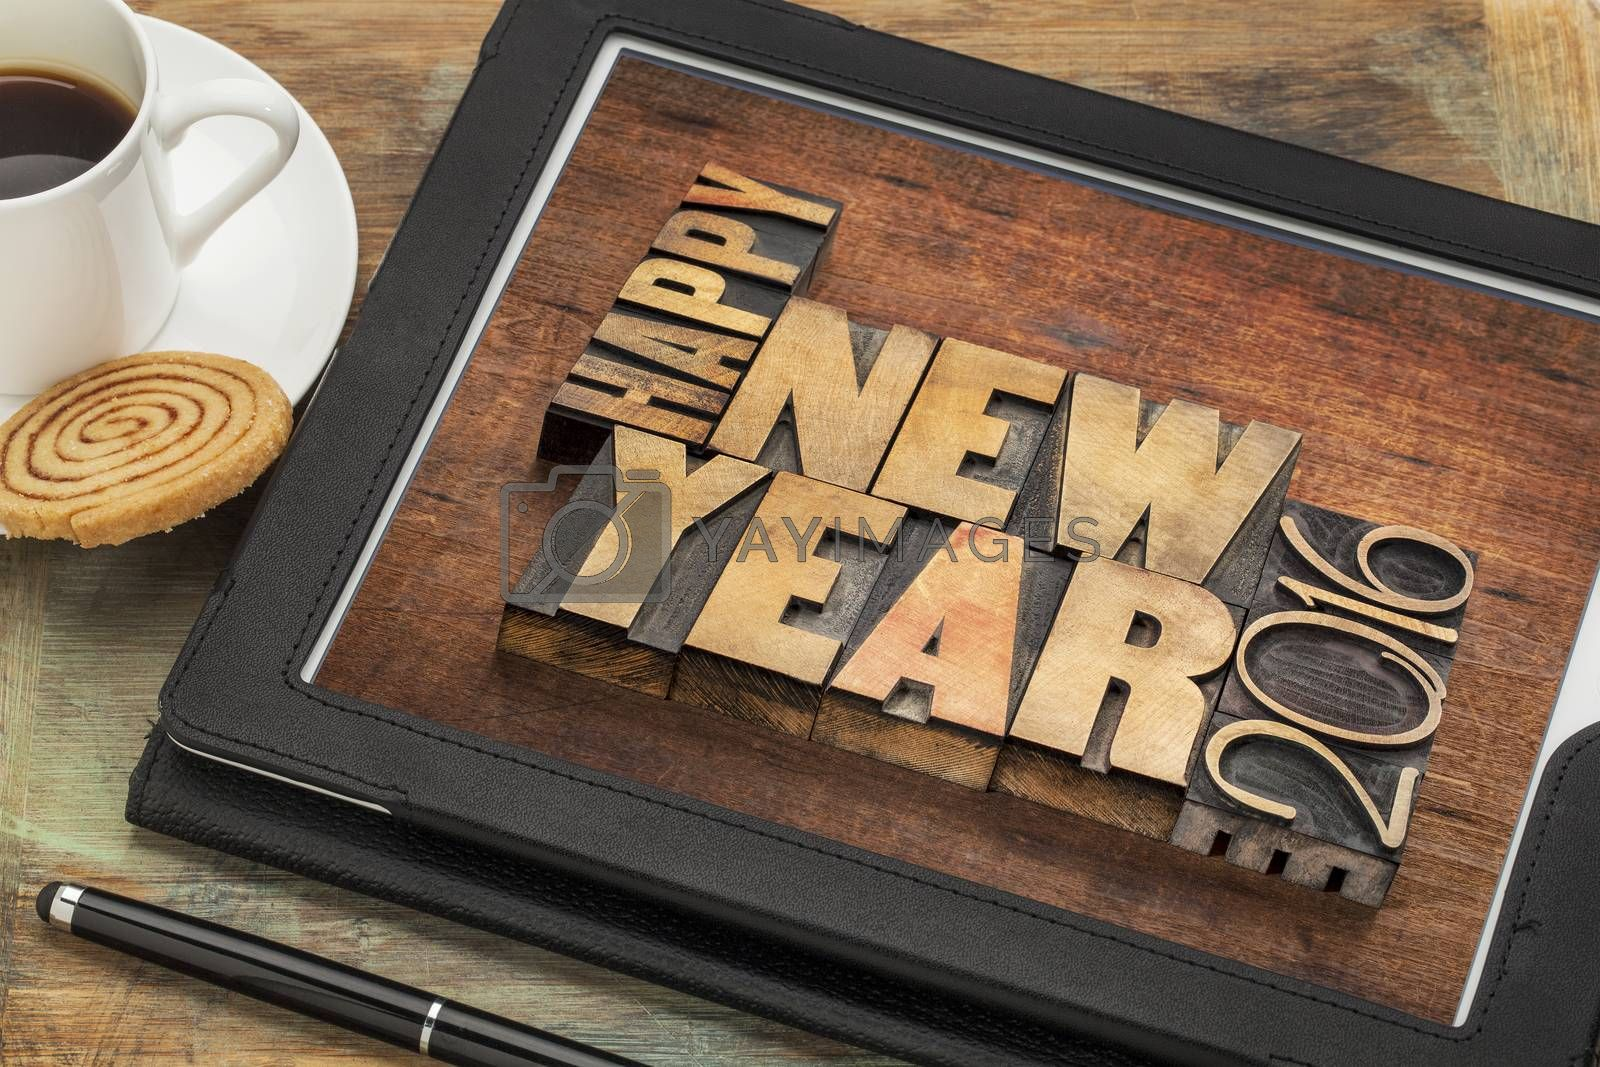 Happy New Year 2016 greetings  - text in vintage letterpress wood type blocks on a digital tablet with a cup of coffee